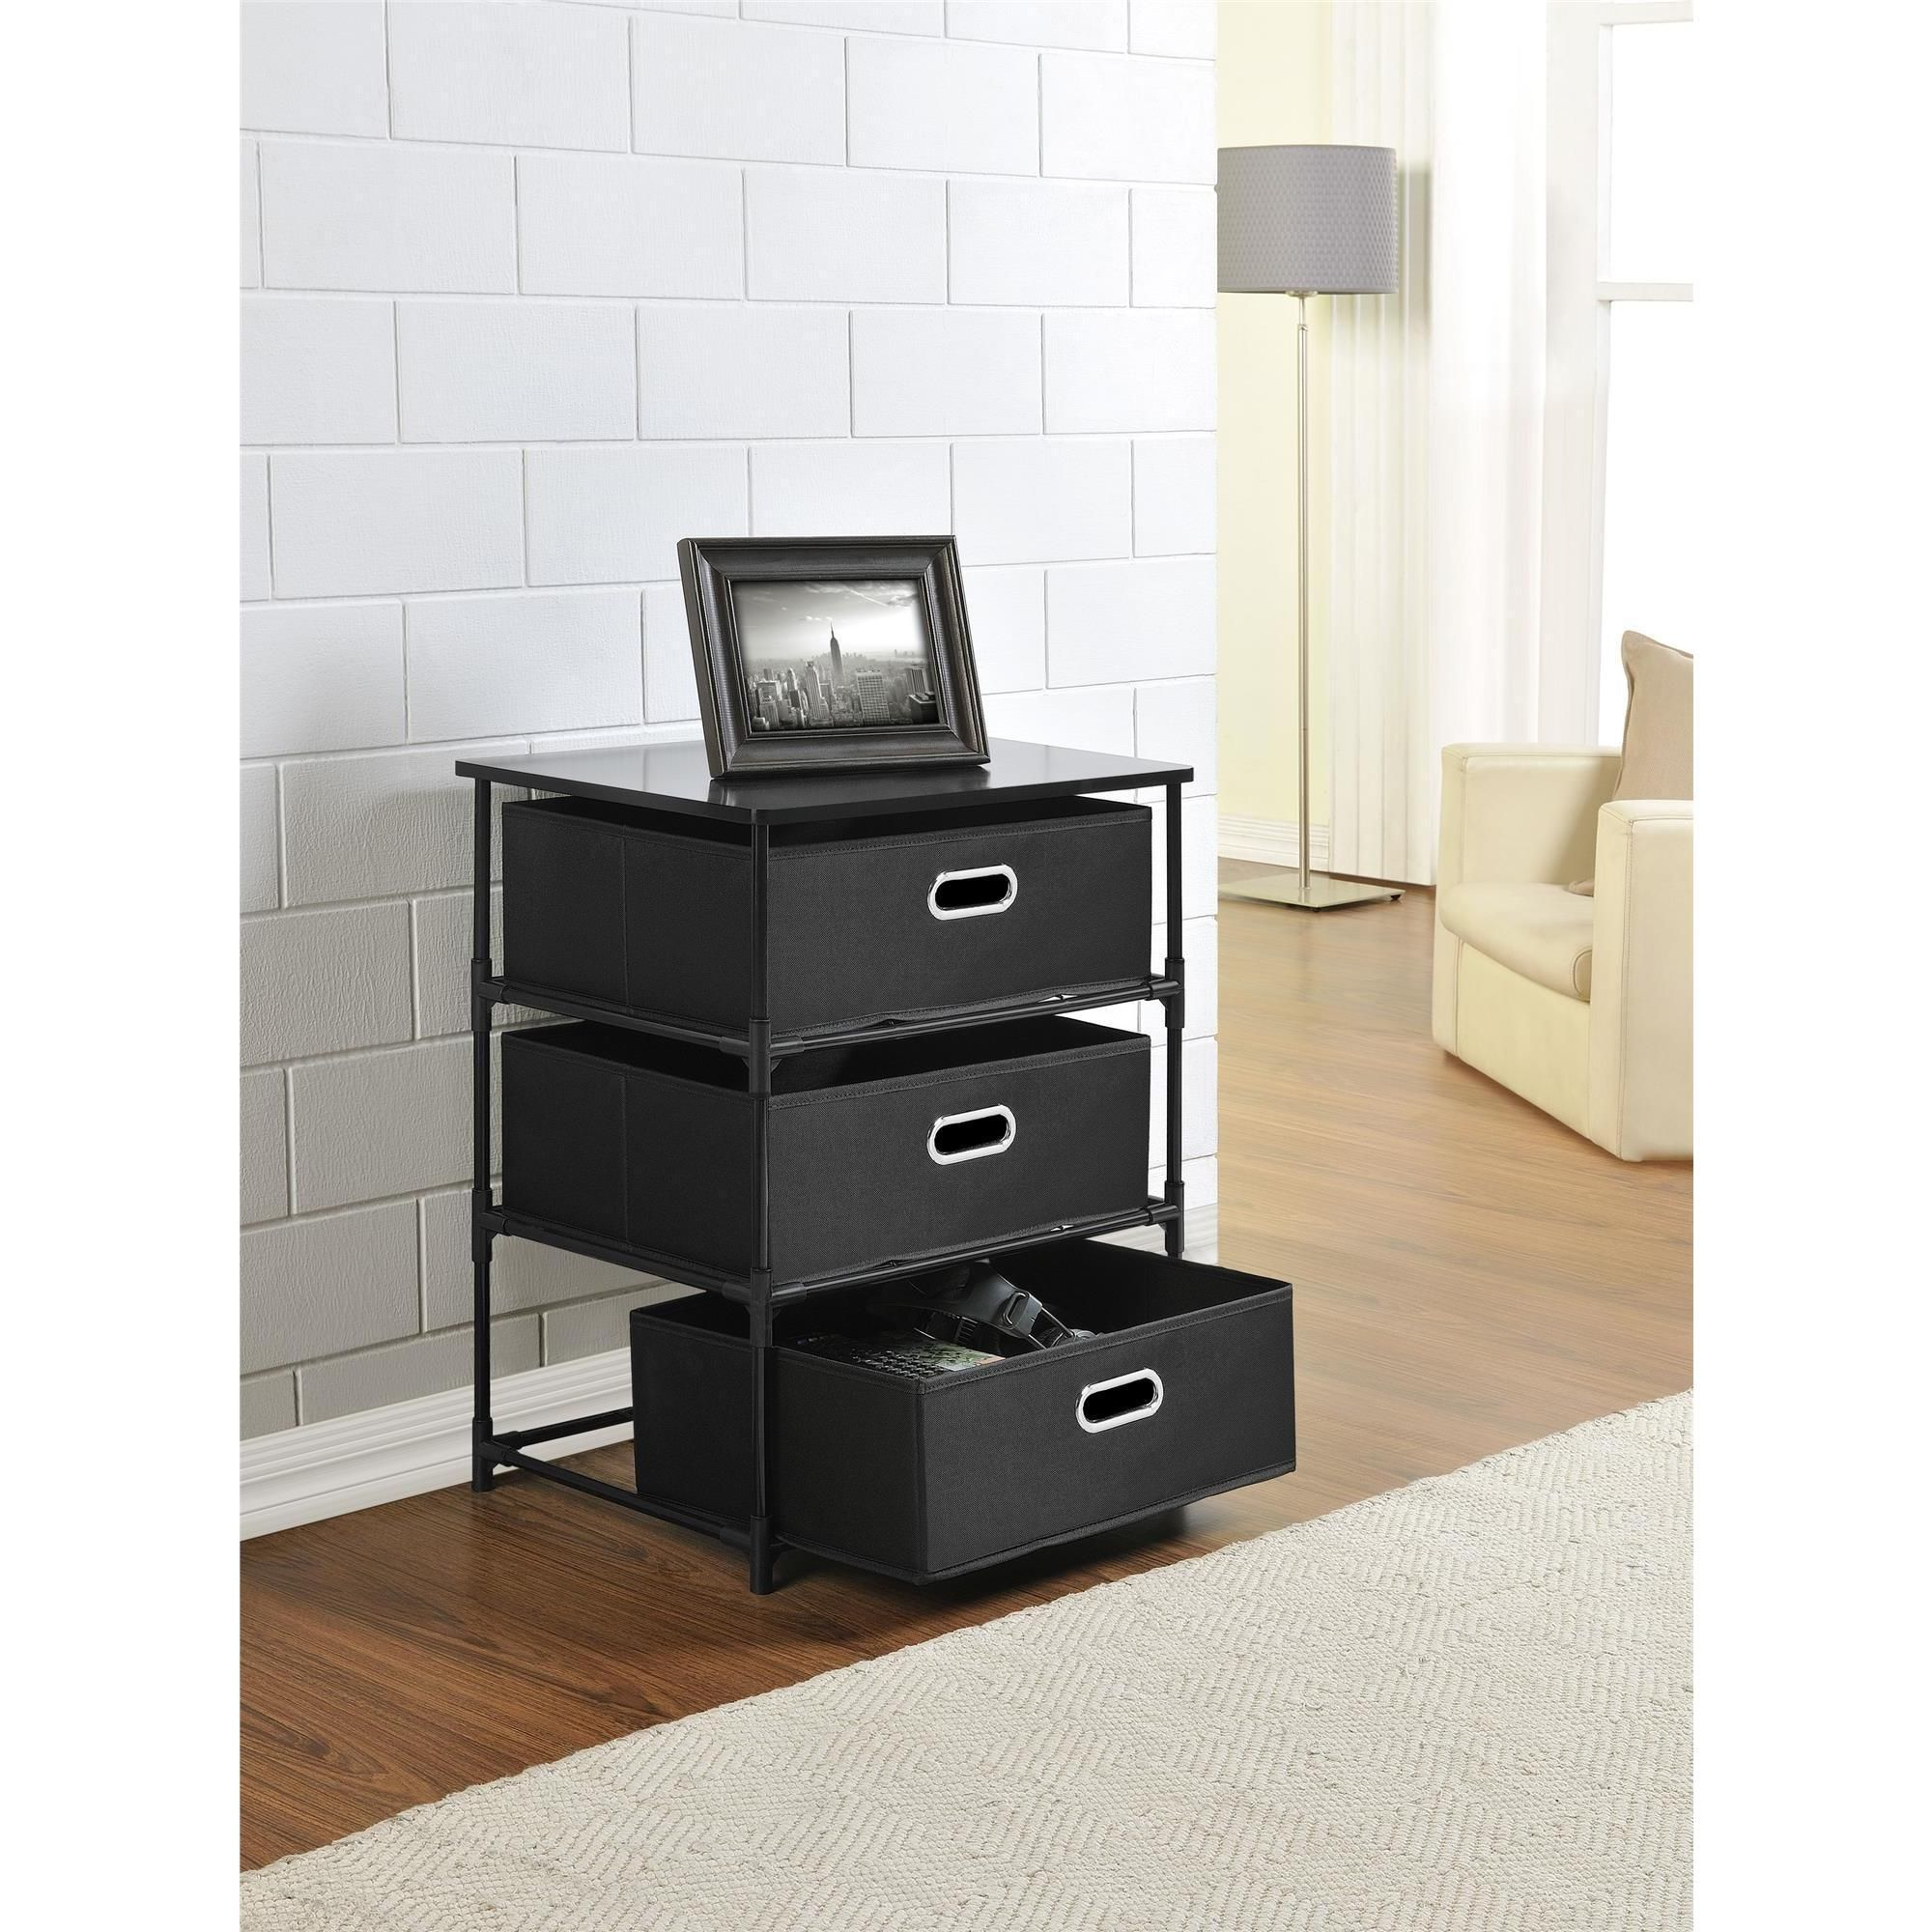 Altra sidney black bin storage end table bin storage end table